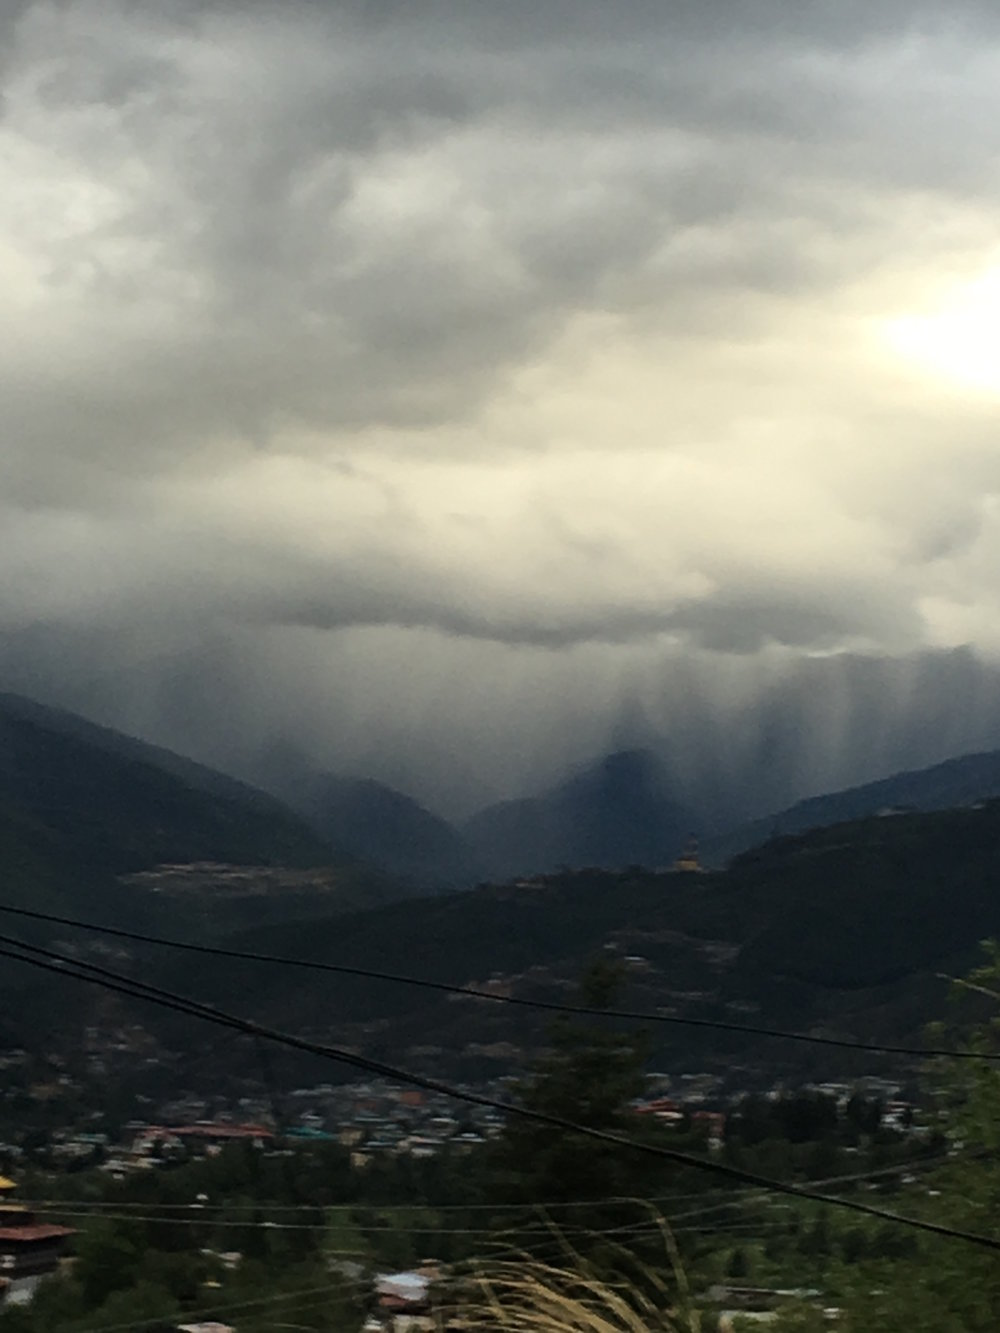 A summer storm makes its way across the Thimphu Valley. This particular storm blew through in about 15 minutes. It looks ominous but was very mild.